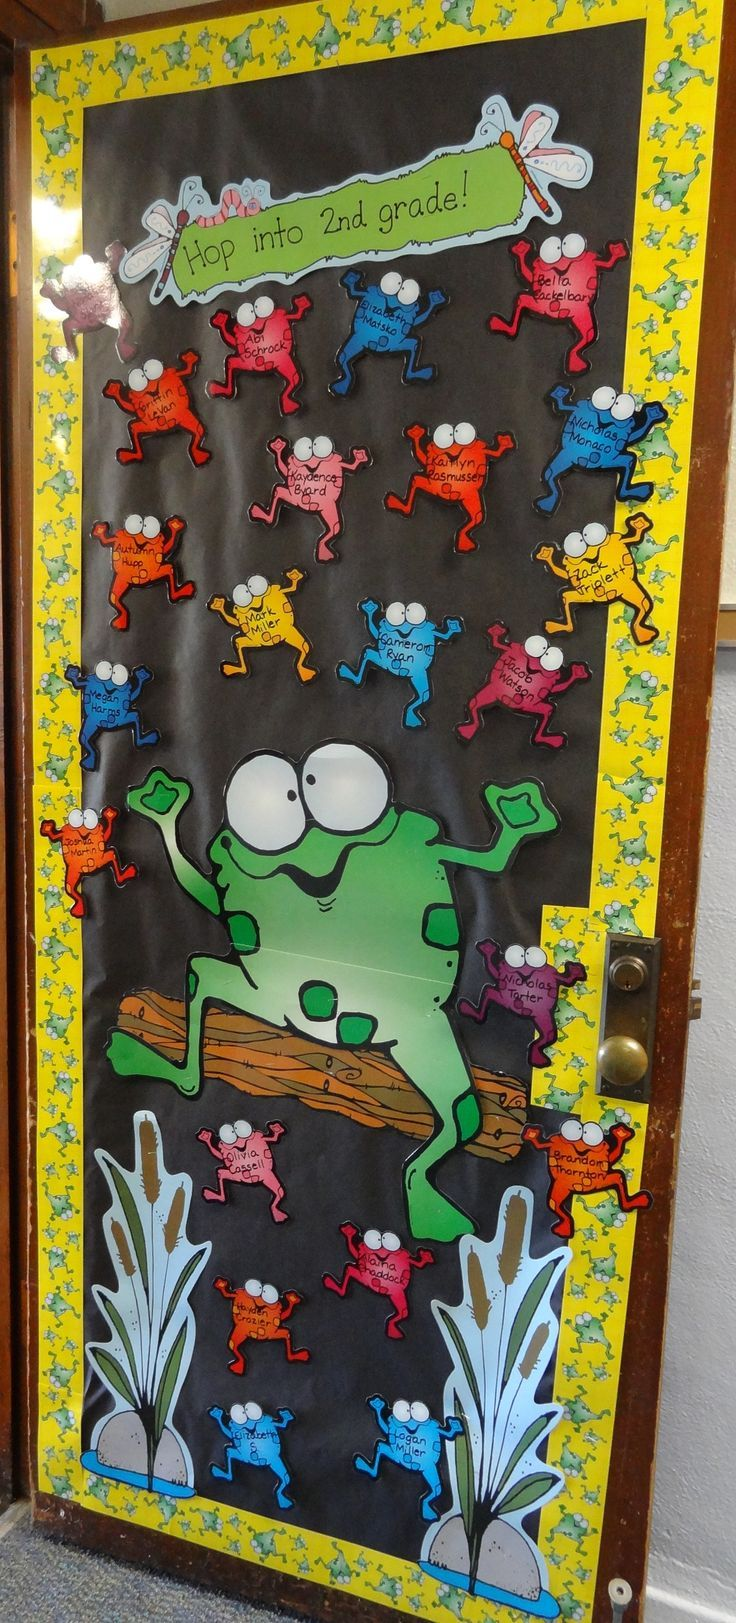 Classroom Decor Games : Best images about classroom decorating and organizing